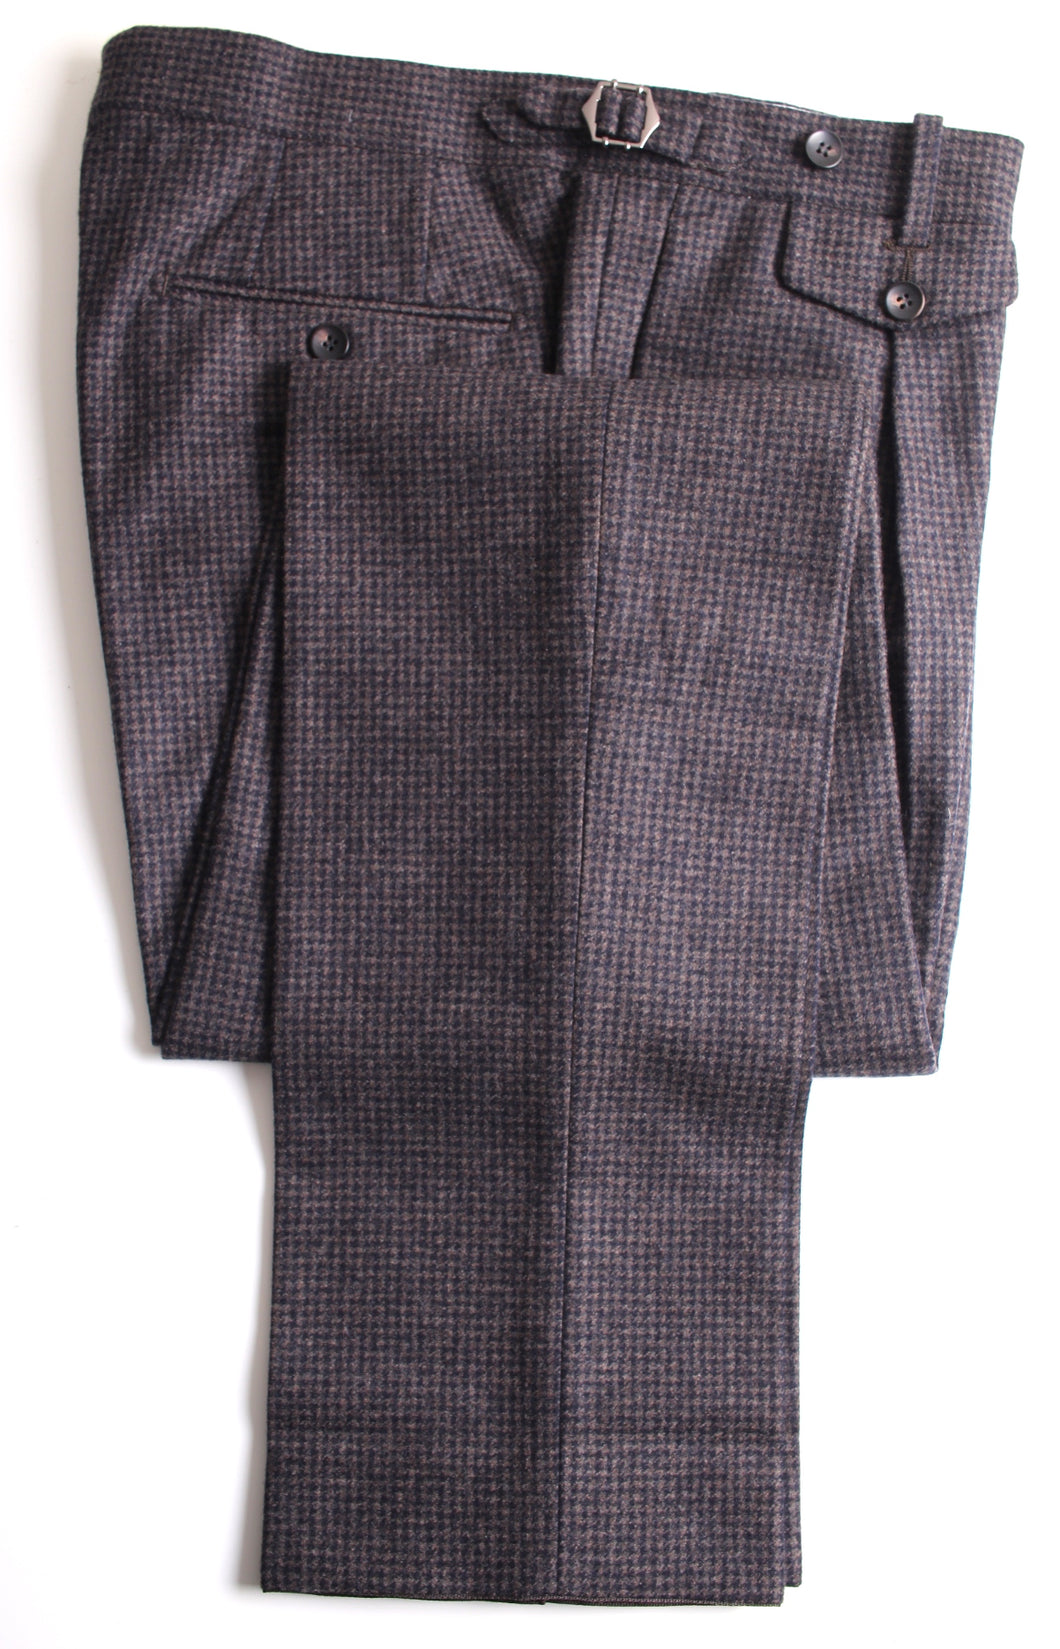 New Suitsupply Brentwood Brown Houndstooth 100% Wool Trousers - Size 38R (33.9 Waist)